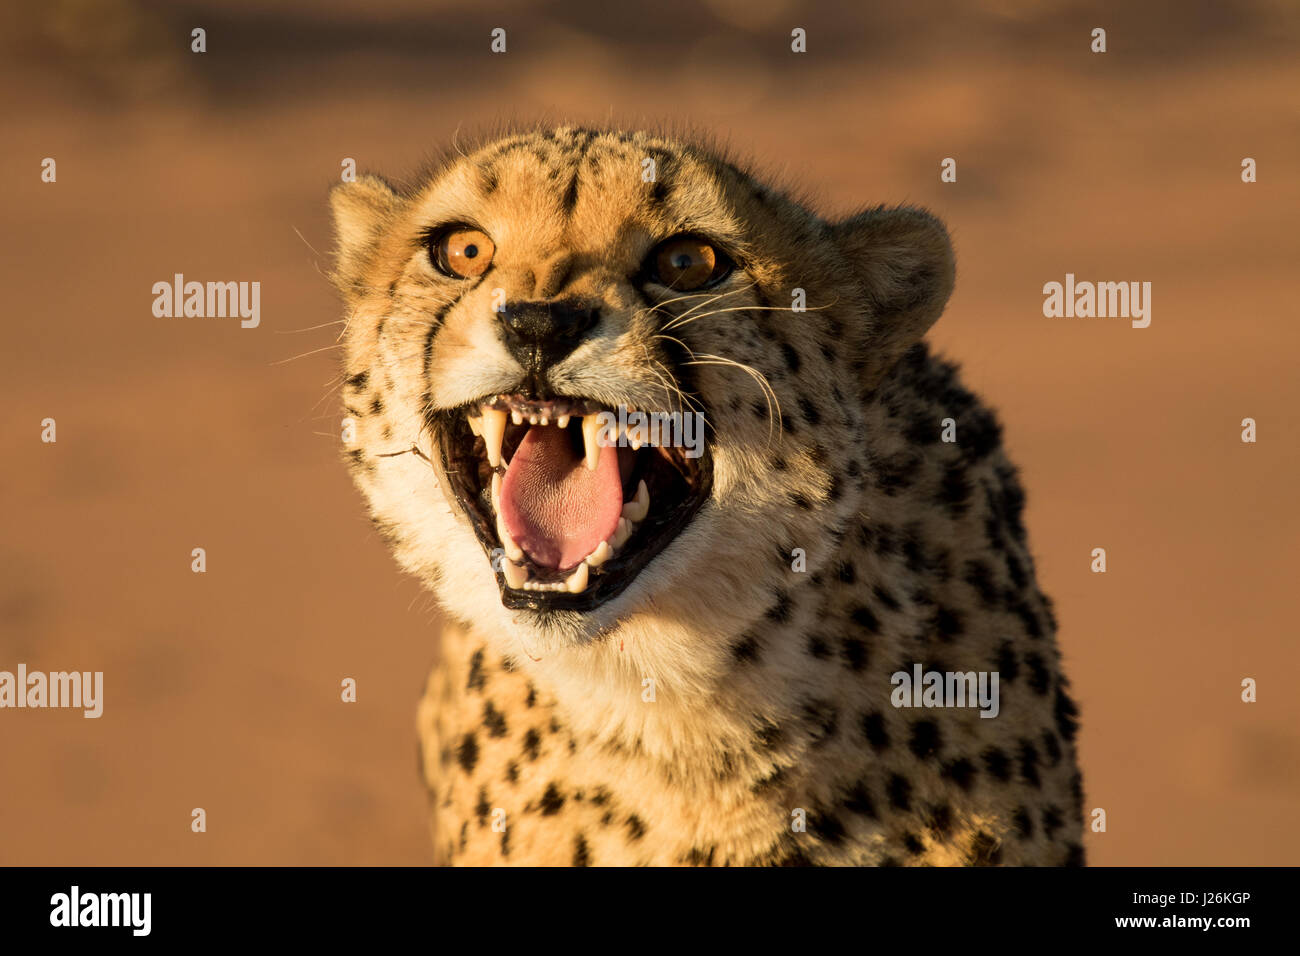 Cheetah growling showing all its teeth, close up photo - Stock Image